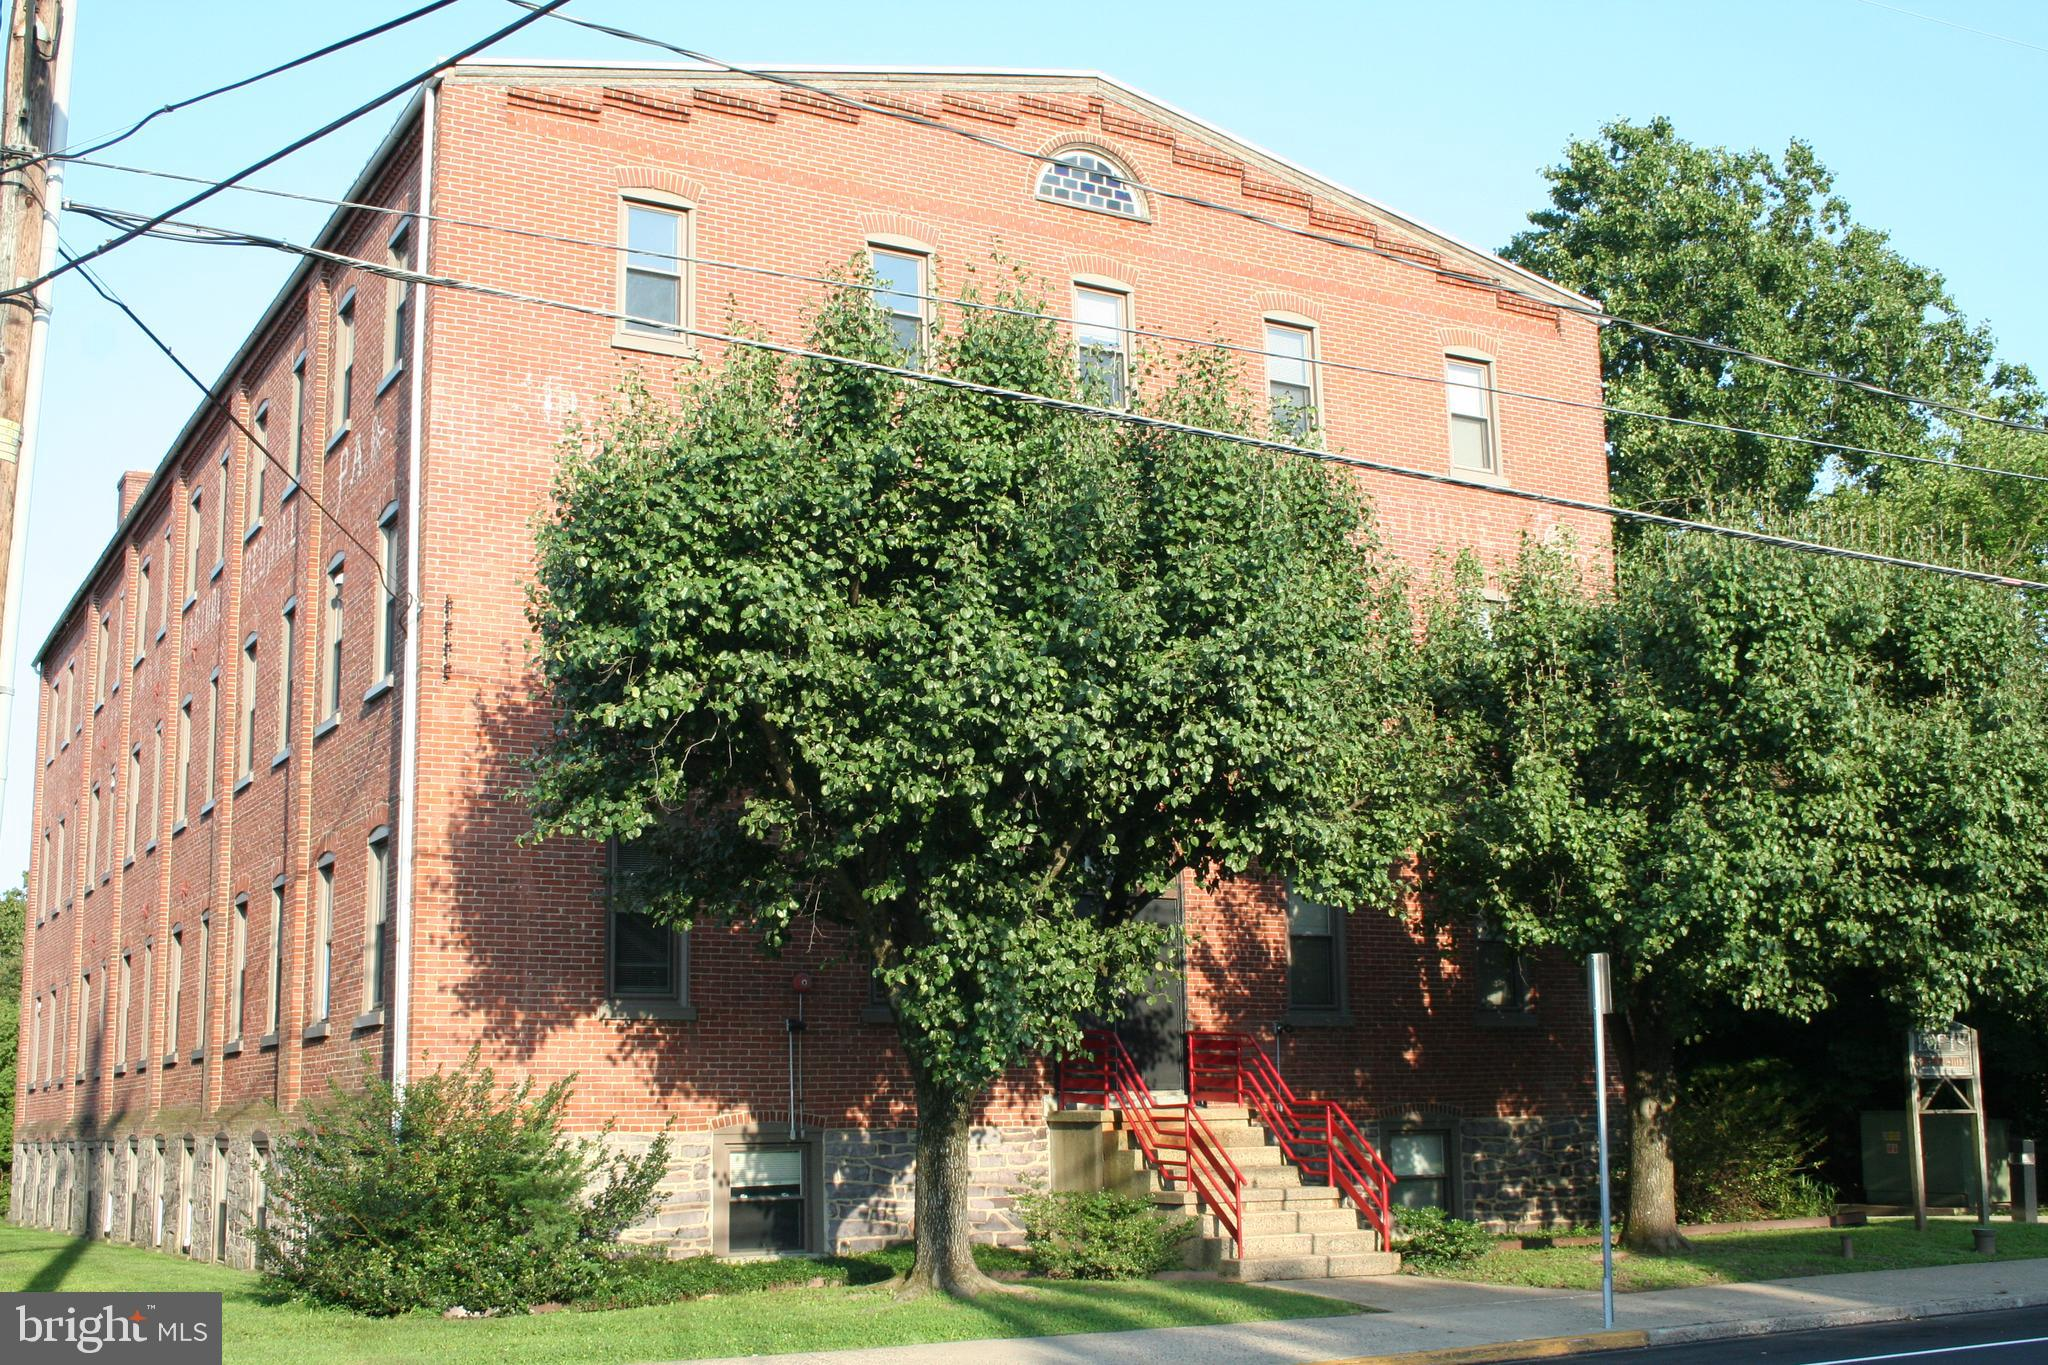 350 MAIN STREET 306, RED HILL, PA 18076